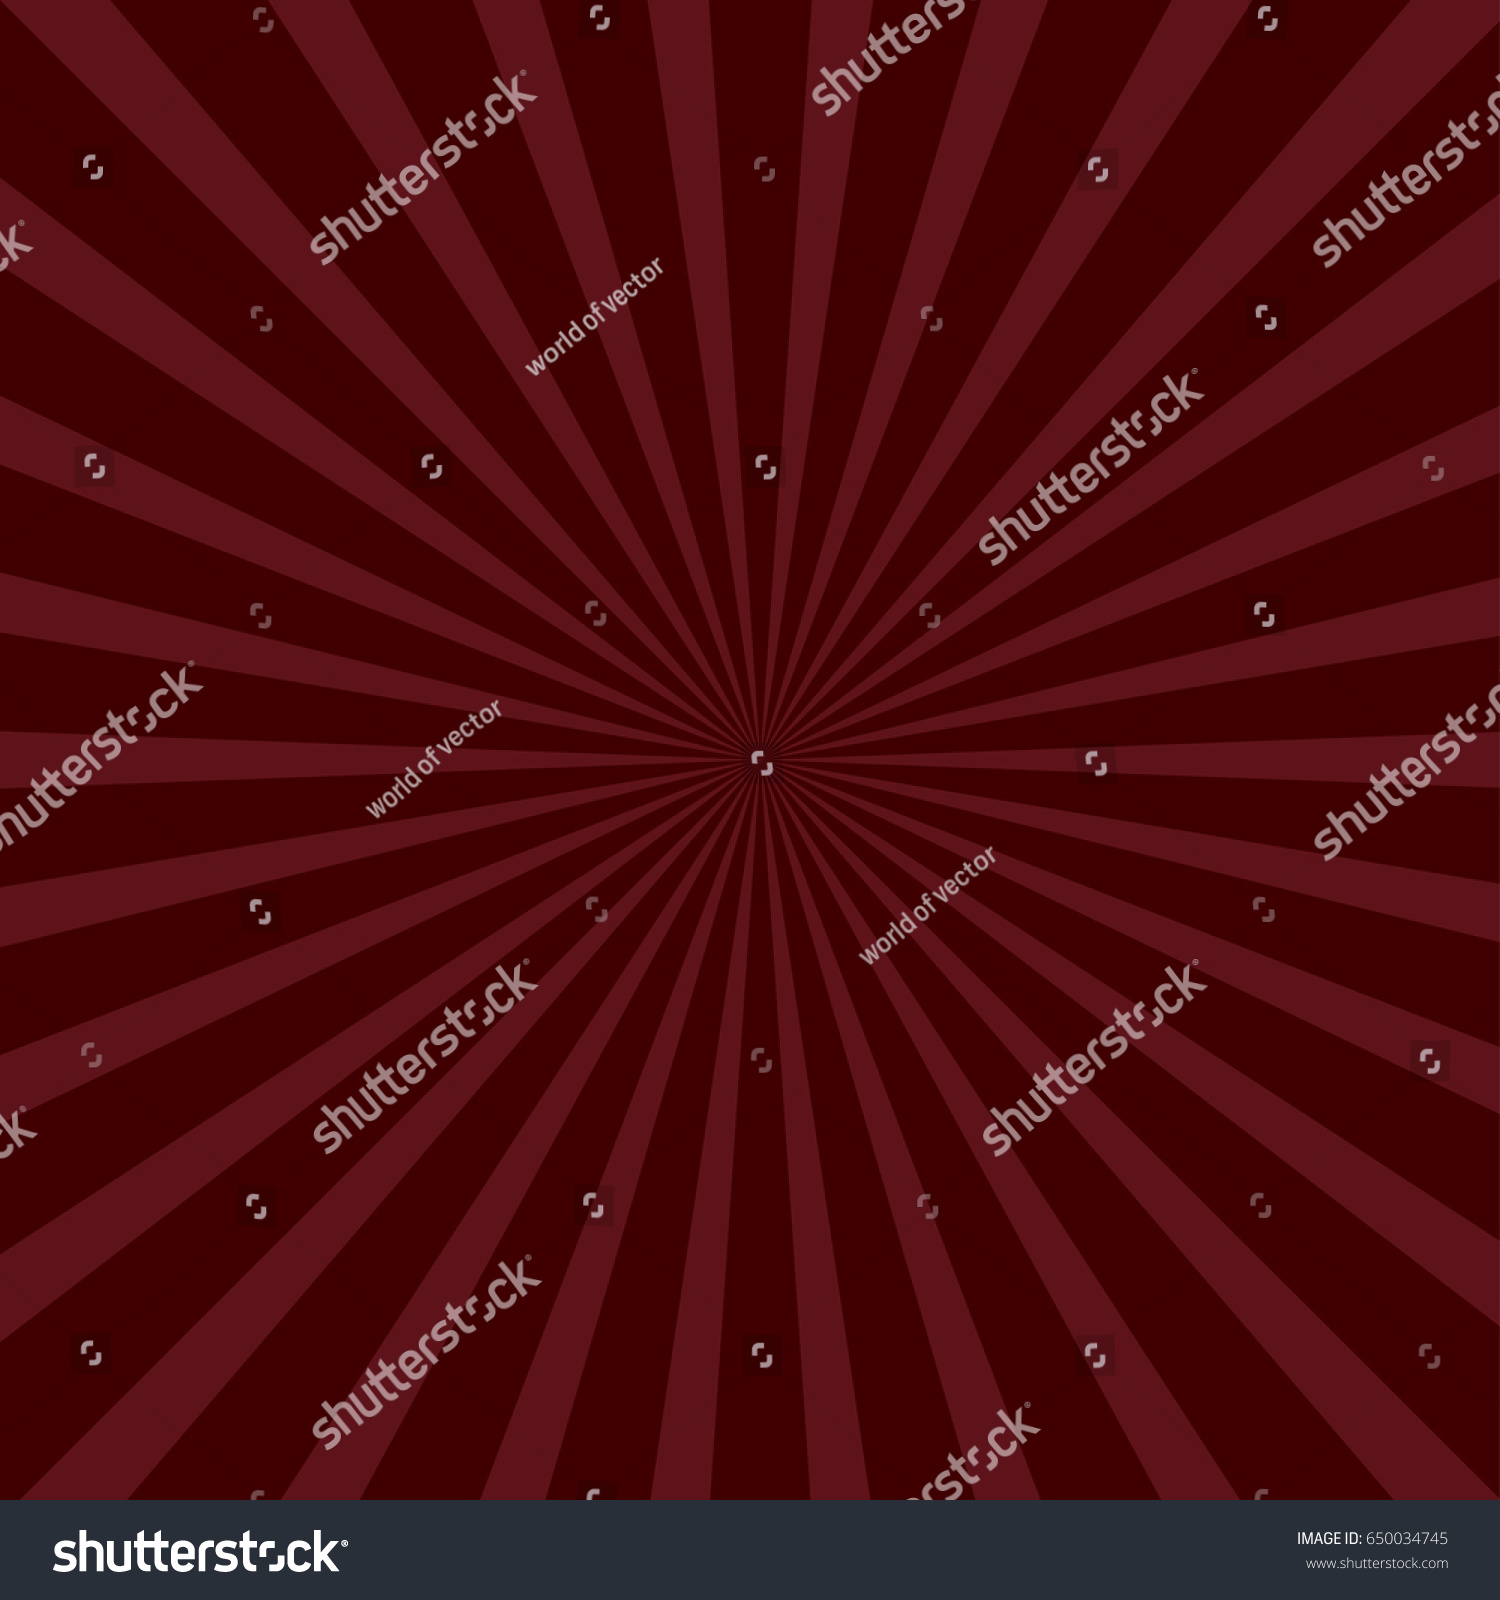 sunburst starburst ray light bordo color stock illustration 650034745 shutterstock